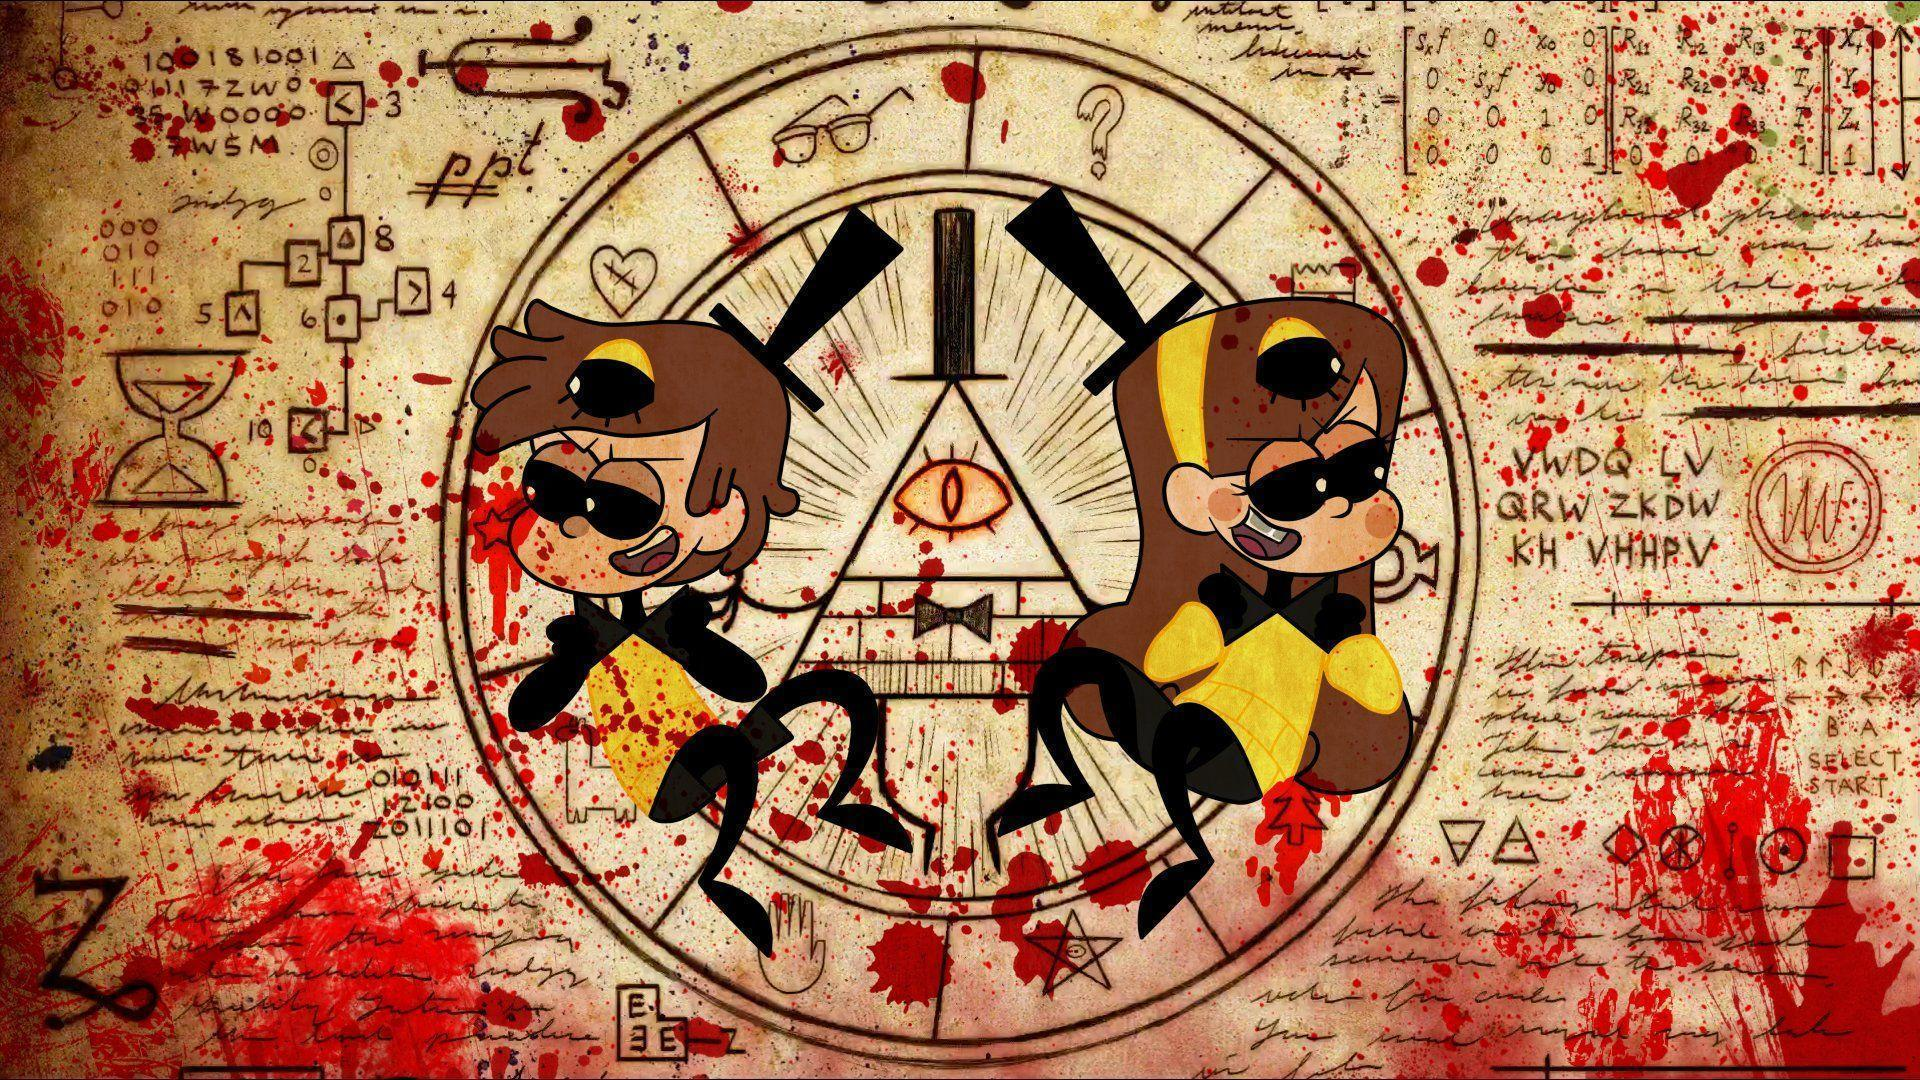 Gravity Falls Wallpapers besides Transport Pictograms besides chinavermillionautopartscoltd enic moreover Victory Motorcycles Reveal Striking International Line Up For 2015 moreover New Life For Detroits Train Station Billionaire Moroun Pledges More Rehab. on motor symbols